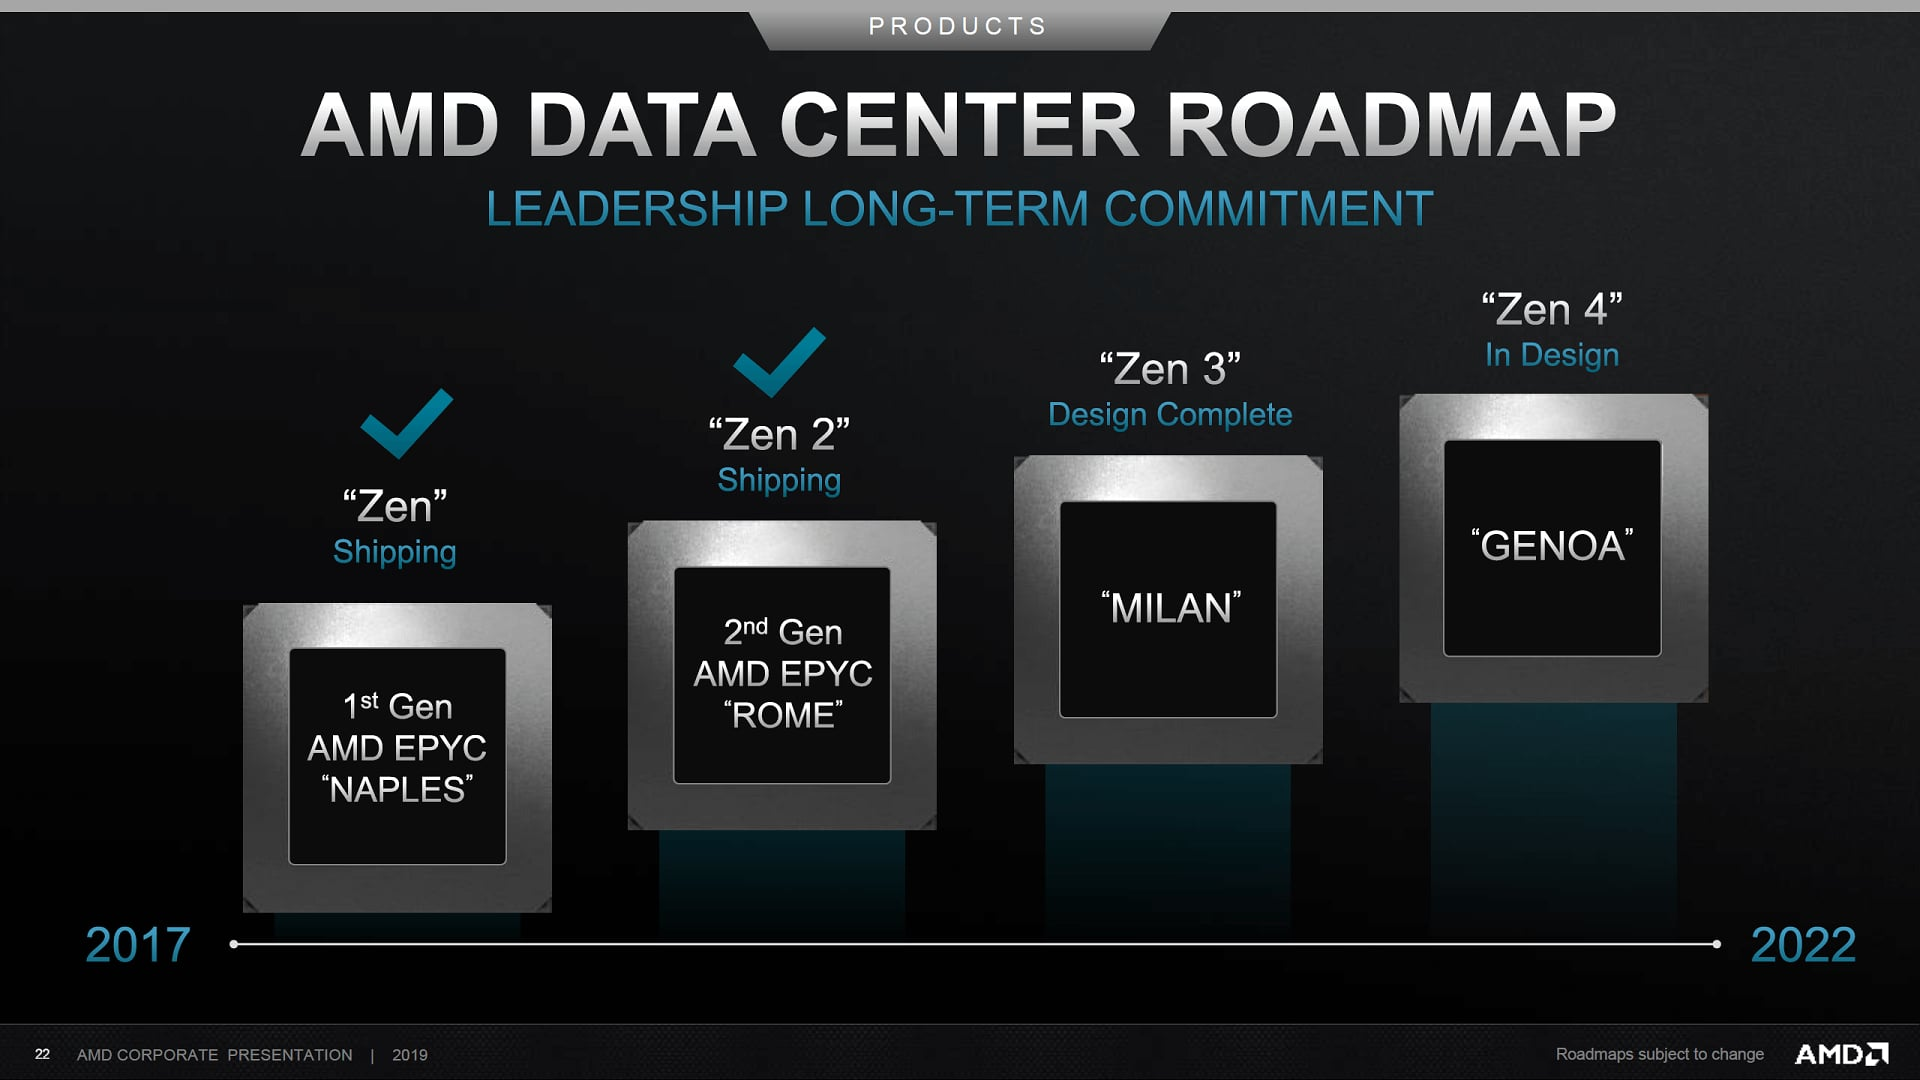 Zen 3 and Zen 4 EPYC Roadmap